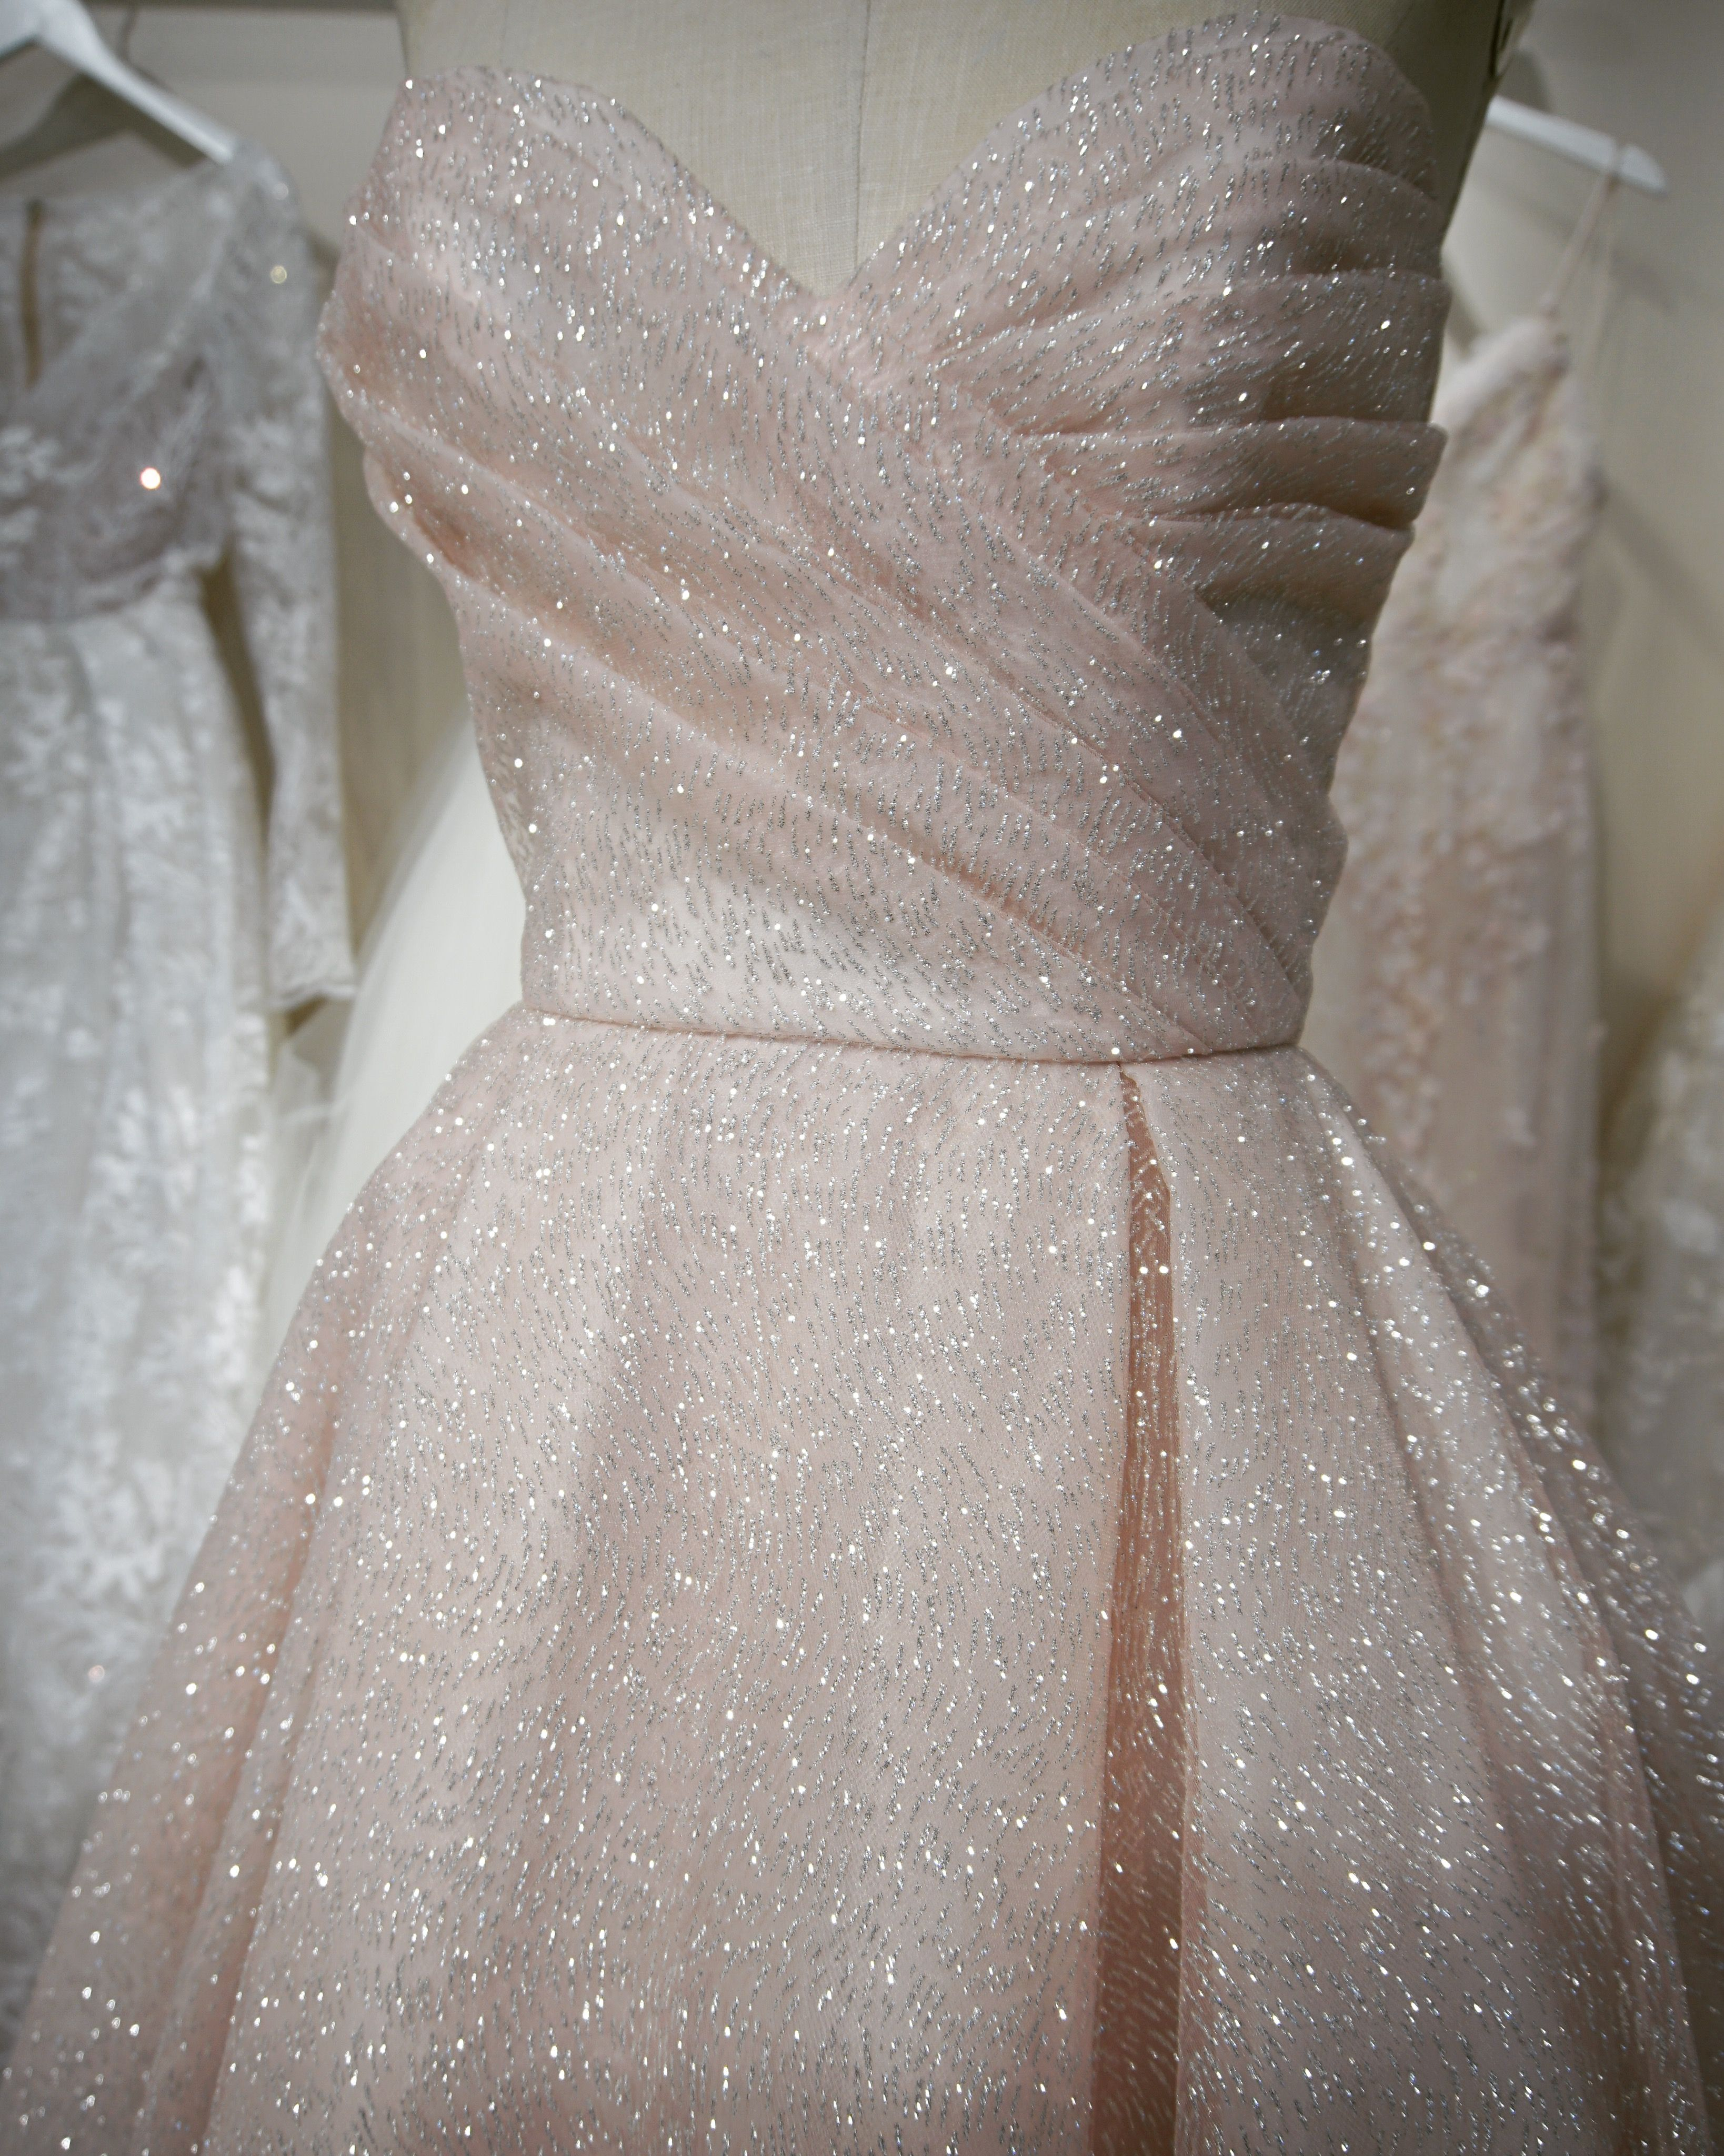 740c71804435 Lazaro bridal gown - Blush shimmer tulle bridal ball gown, strapless  sweetheart neckline, draped bodice with natural waist, box pleated skirt  with side ...